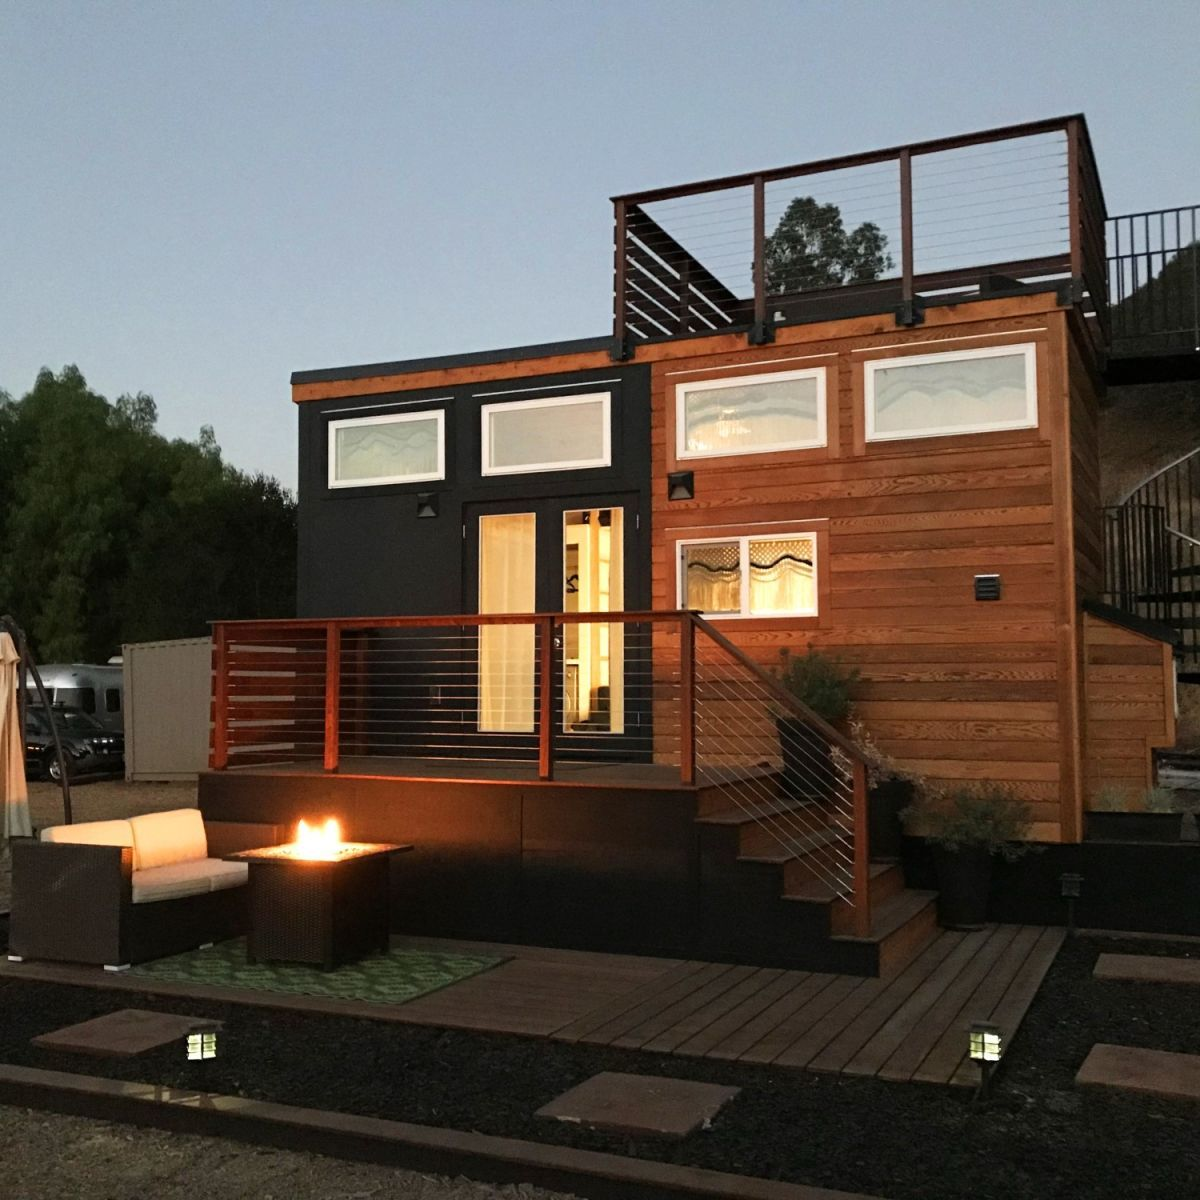 Tiny home of zen tiny house for sale in agoura hills california